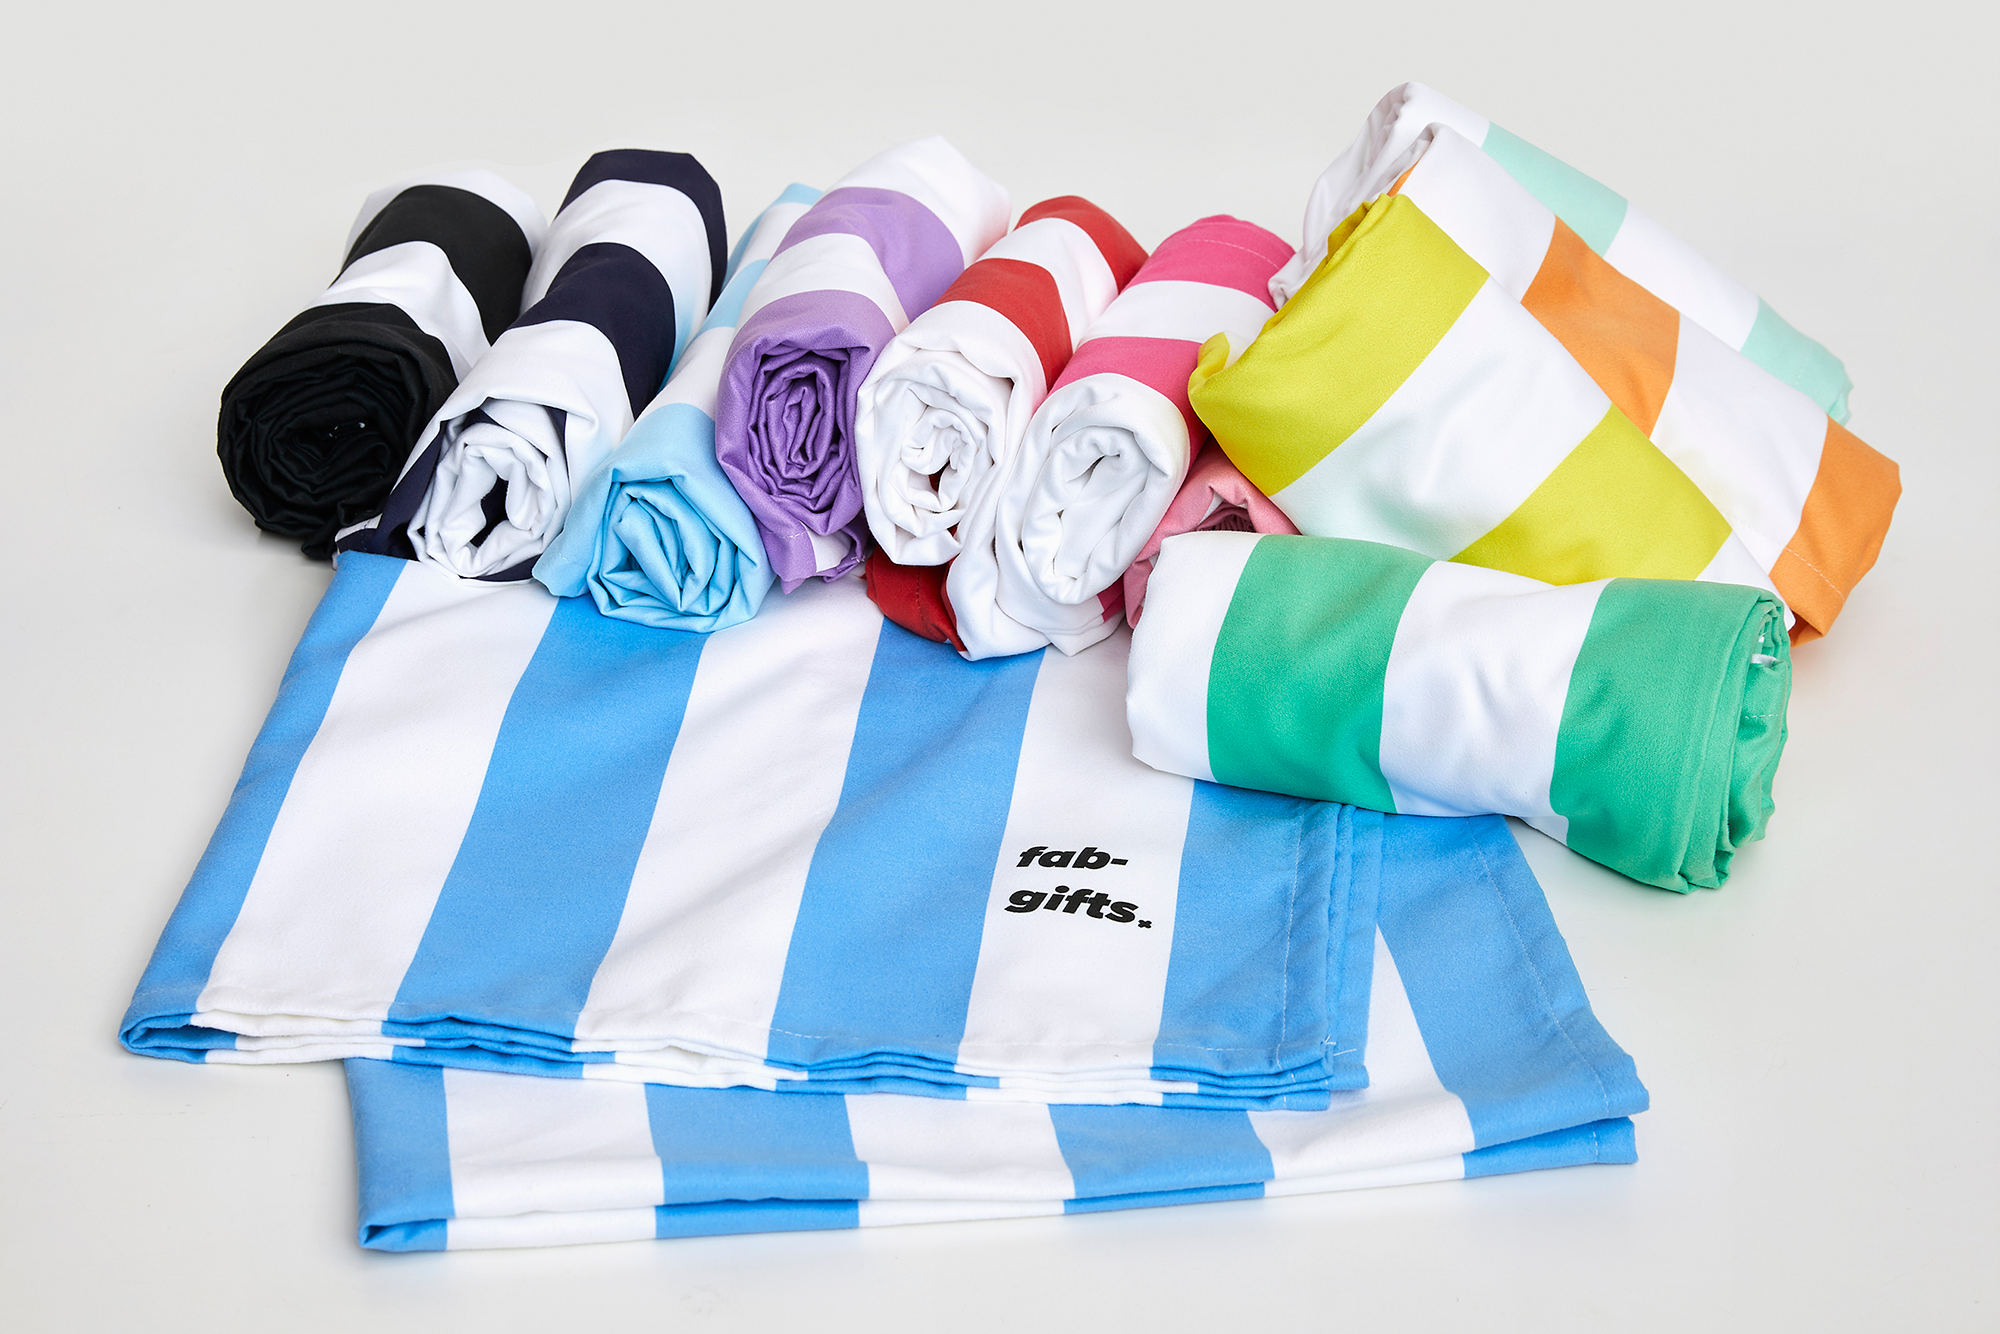 Branded Microfibre and Cotton Towels